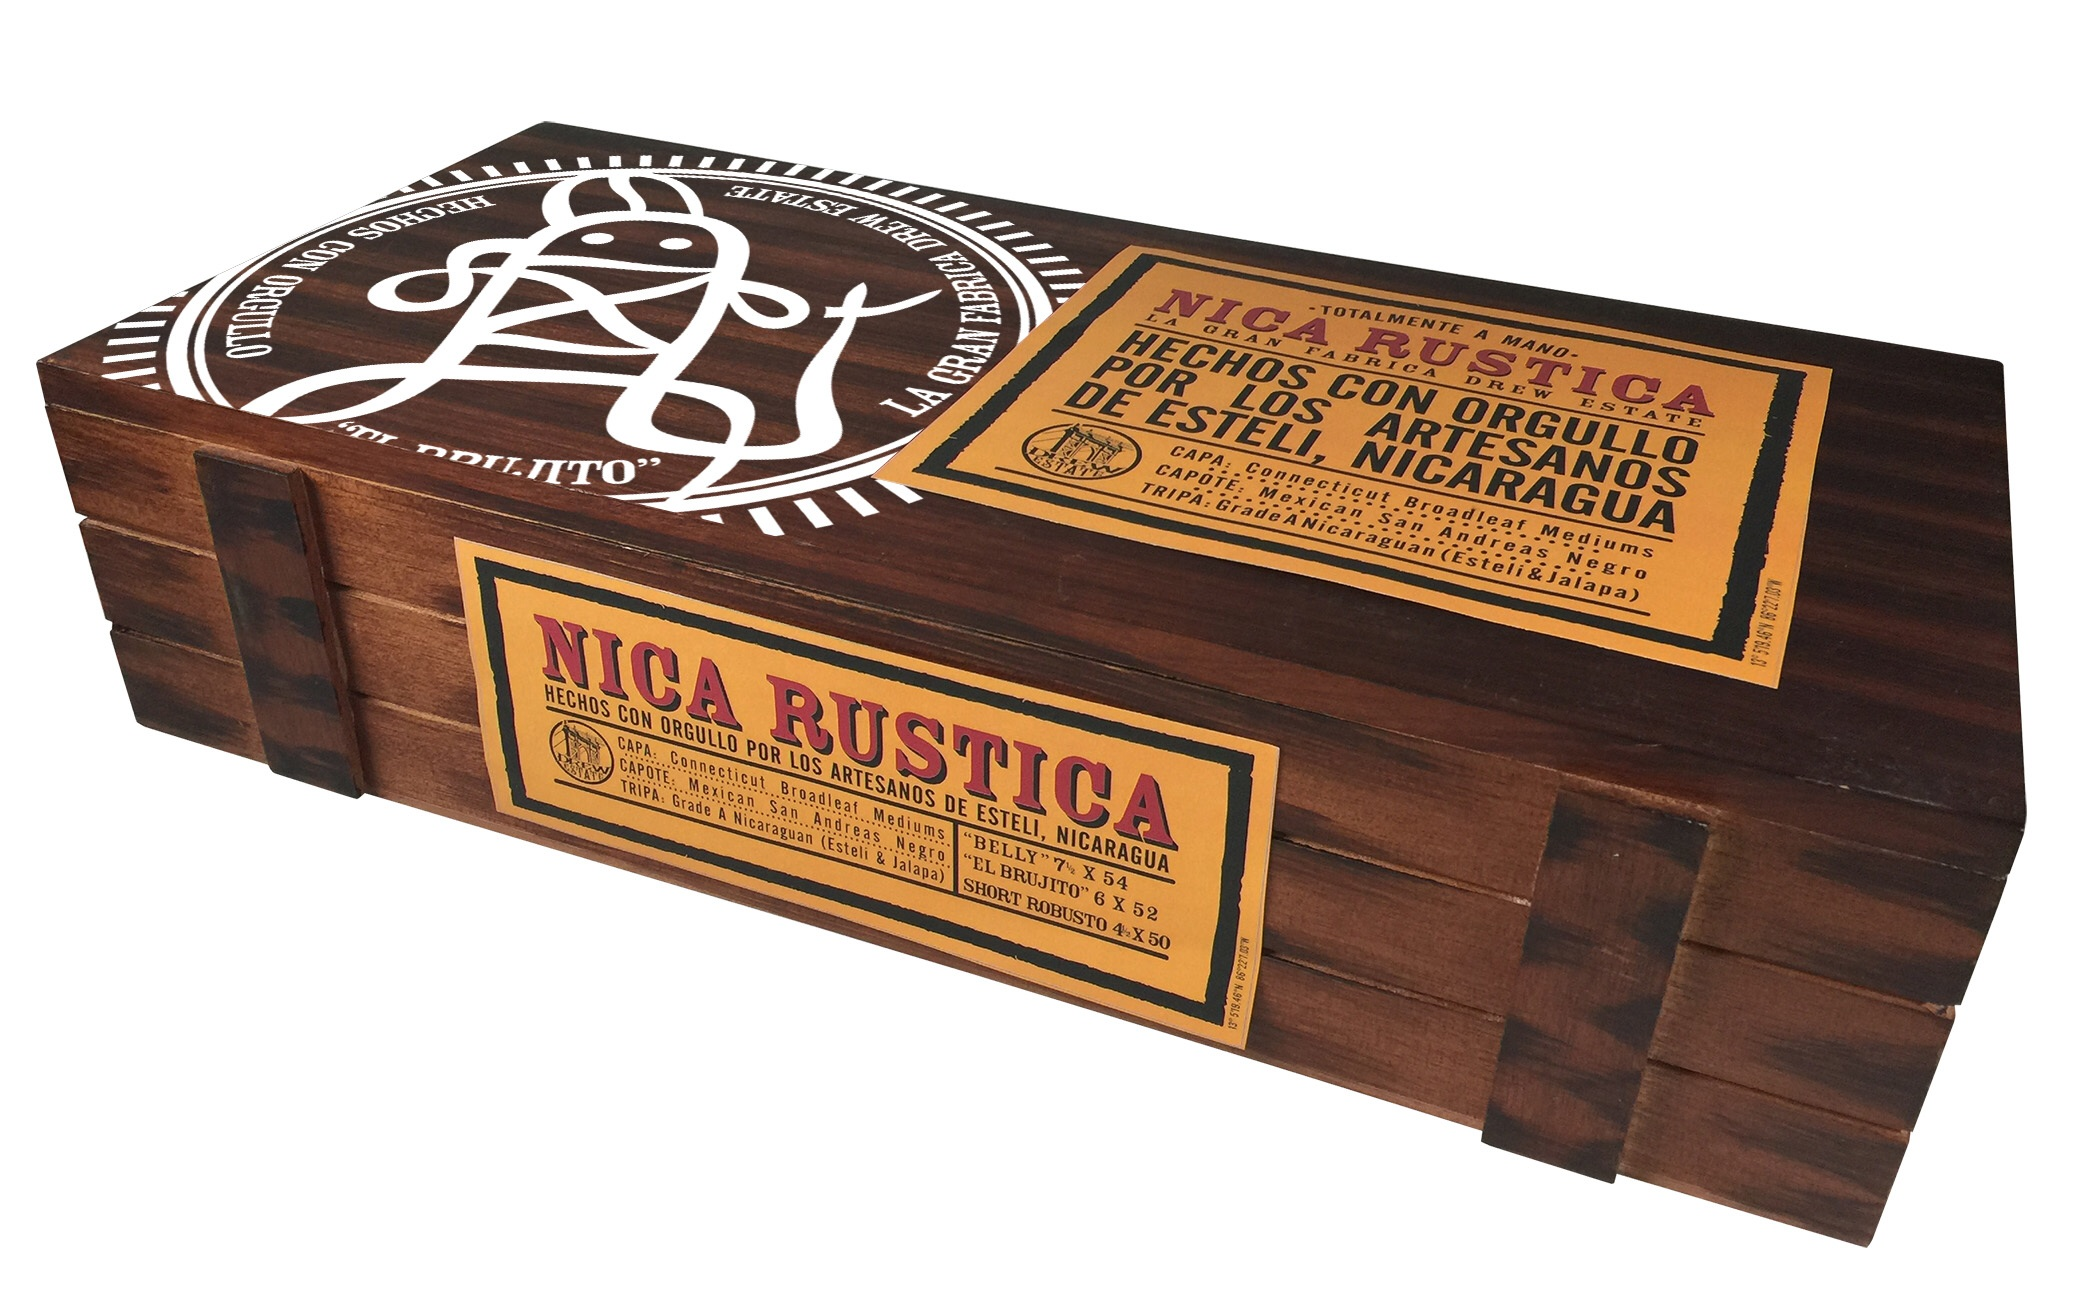 Cigar News: Nica Rustica Short Robusto